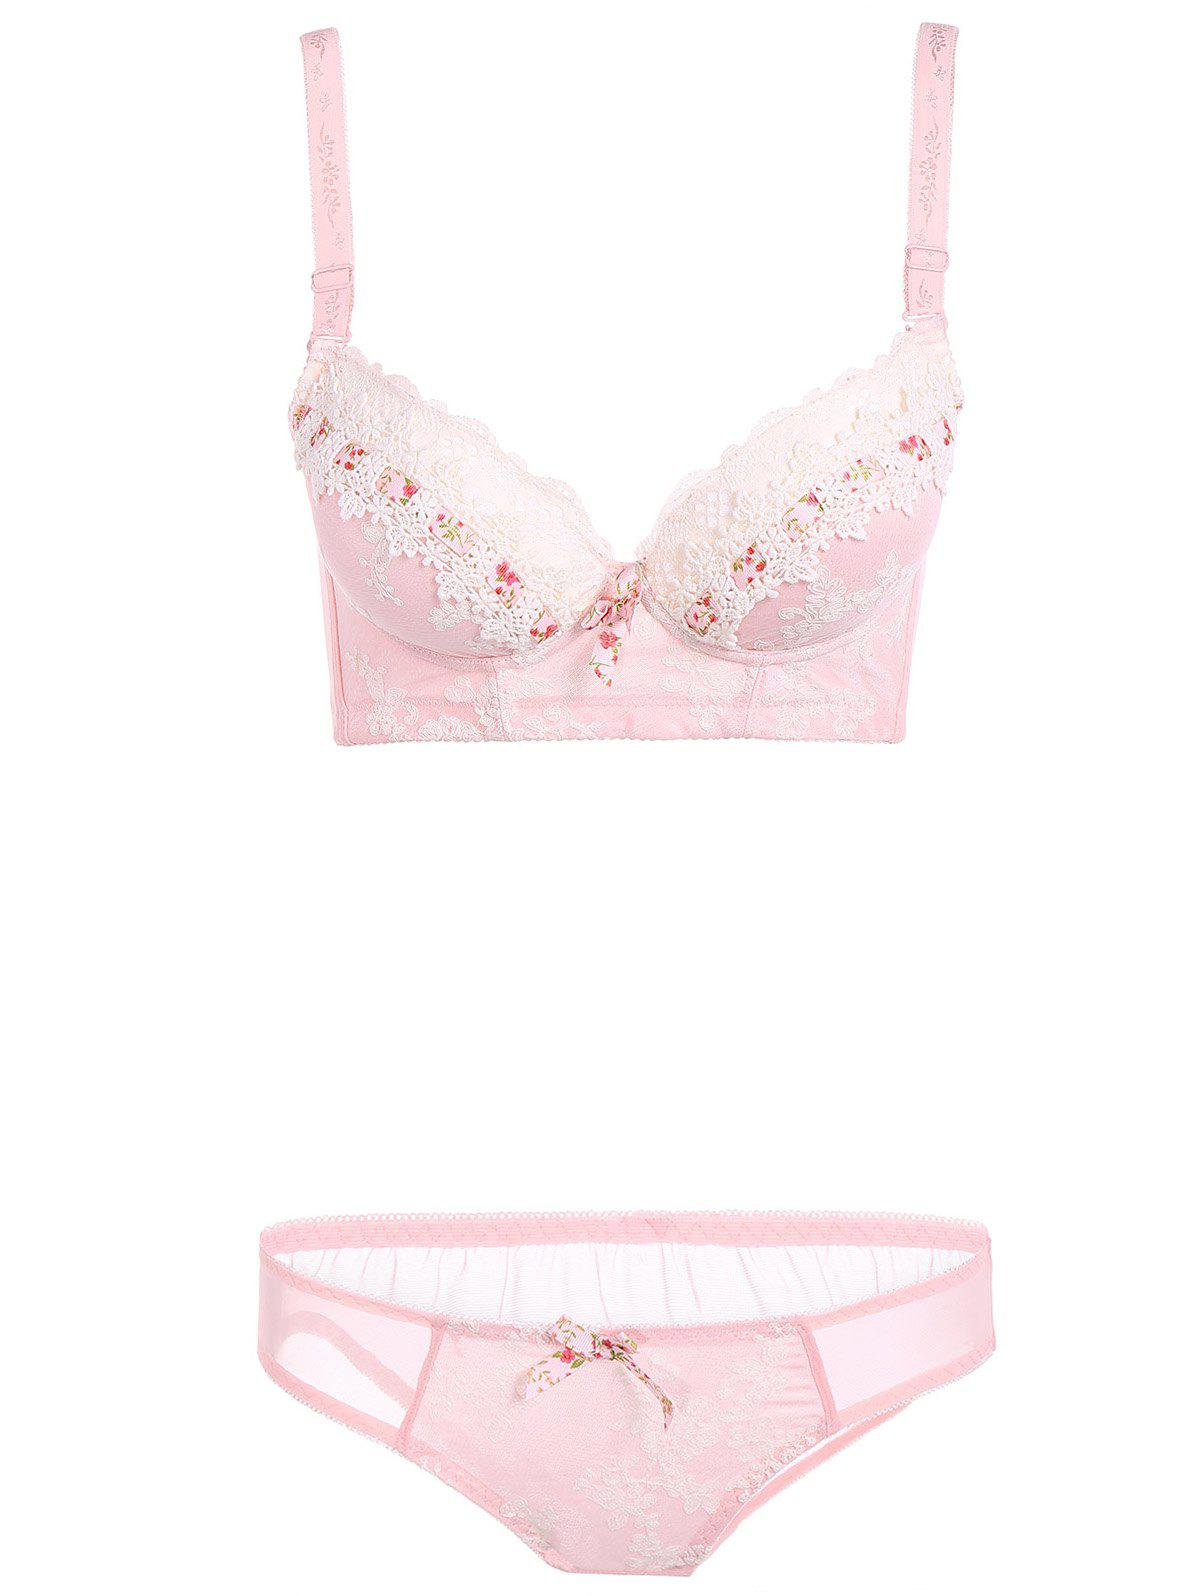 Push Up Lace Underwear épissage Bra Set